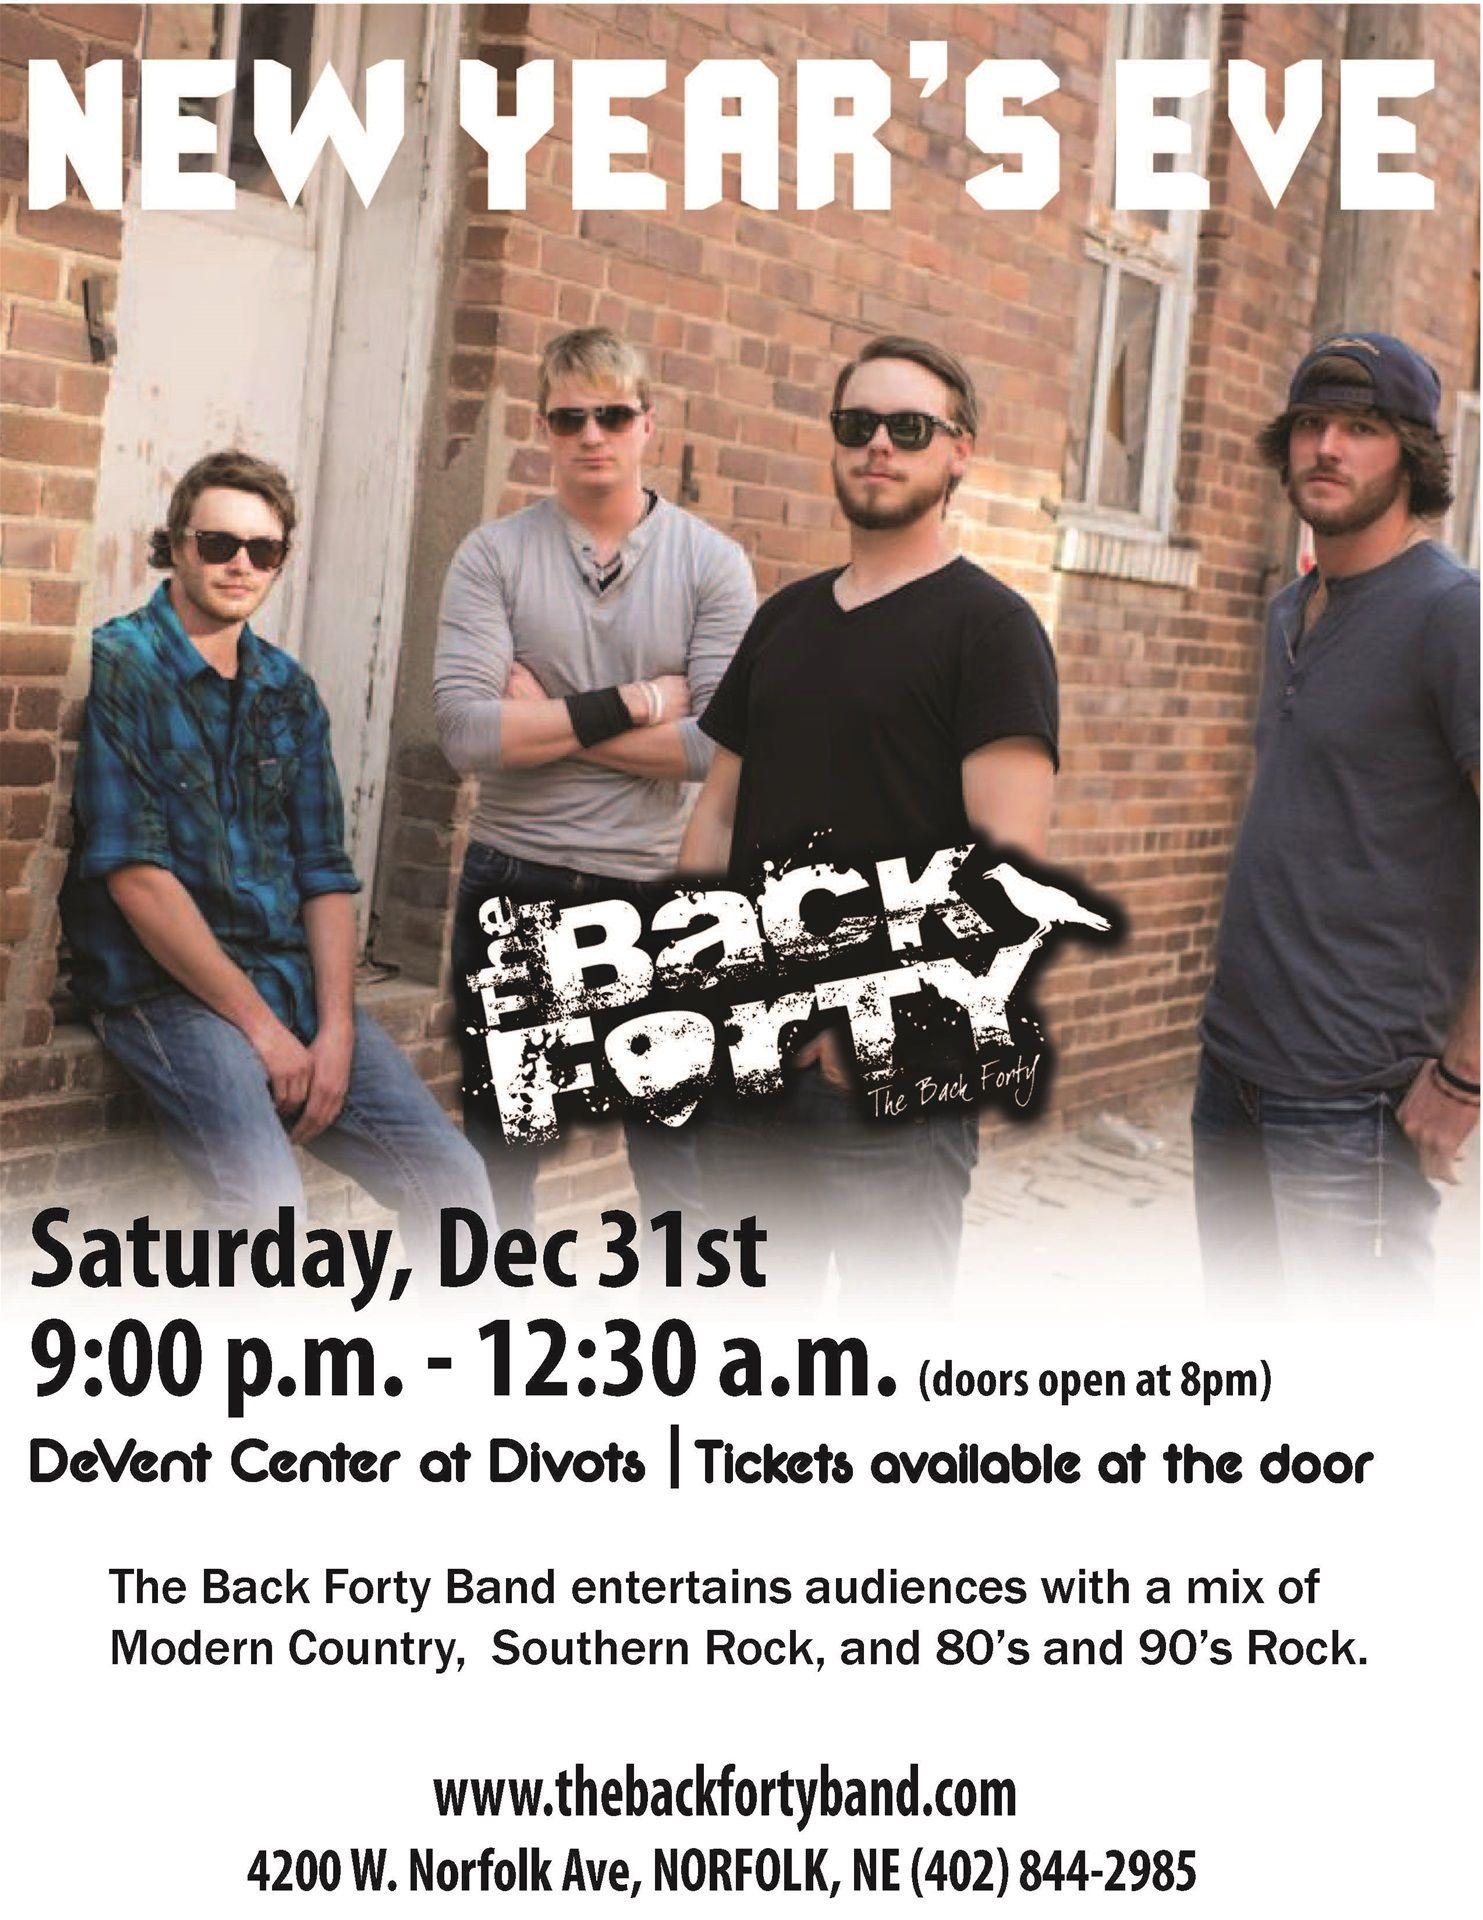 Live Music featuring The Back Forty at 